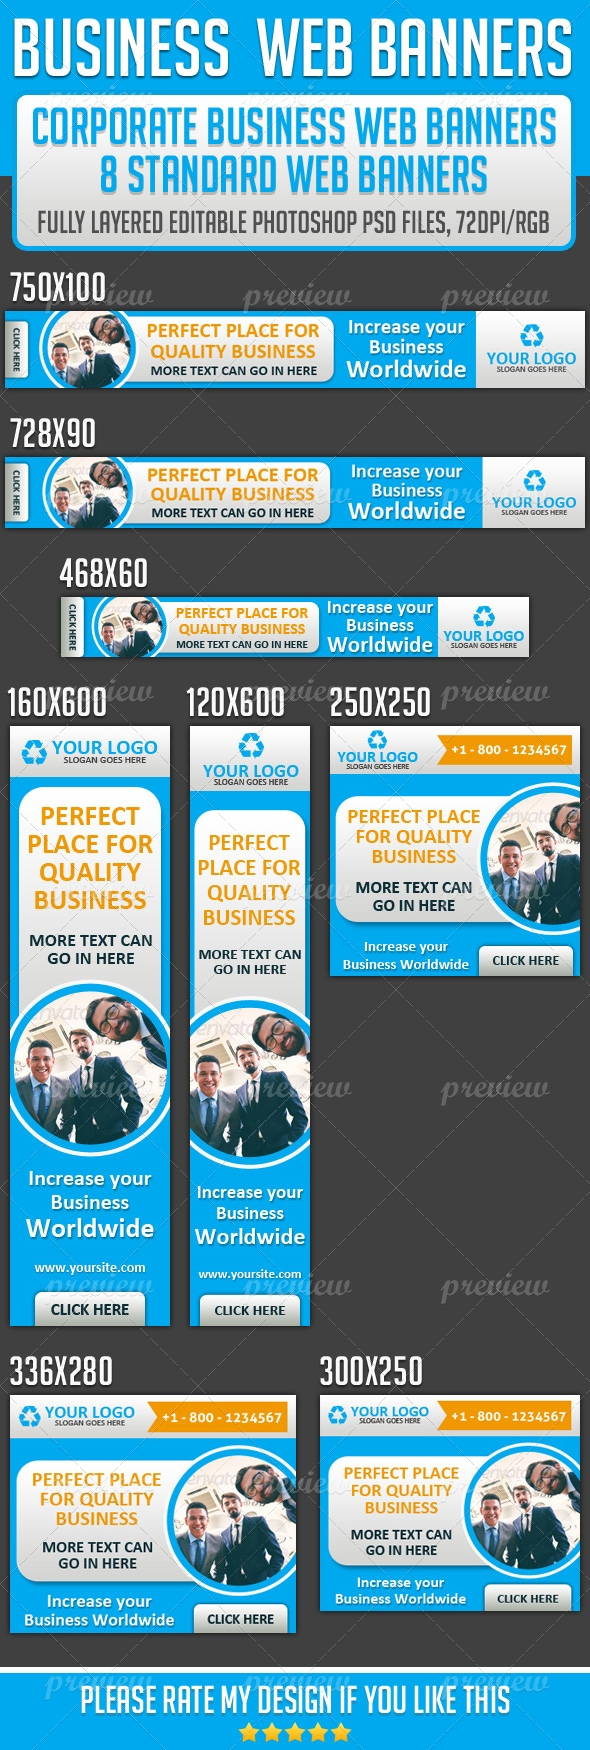 Corporate Business Web Banner